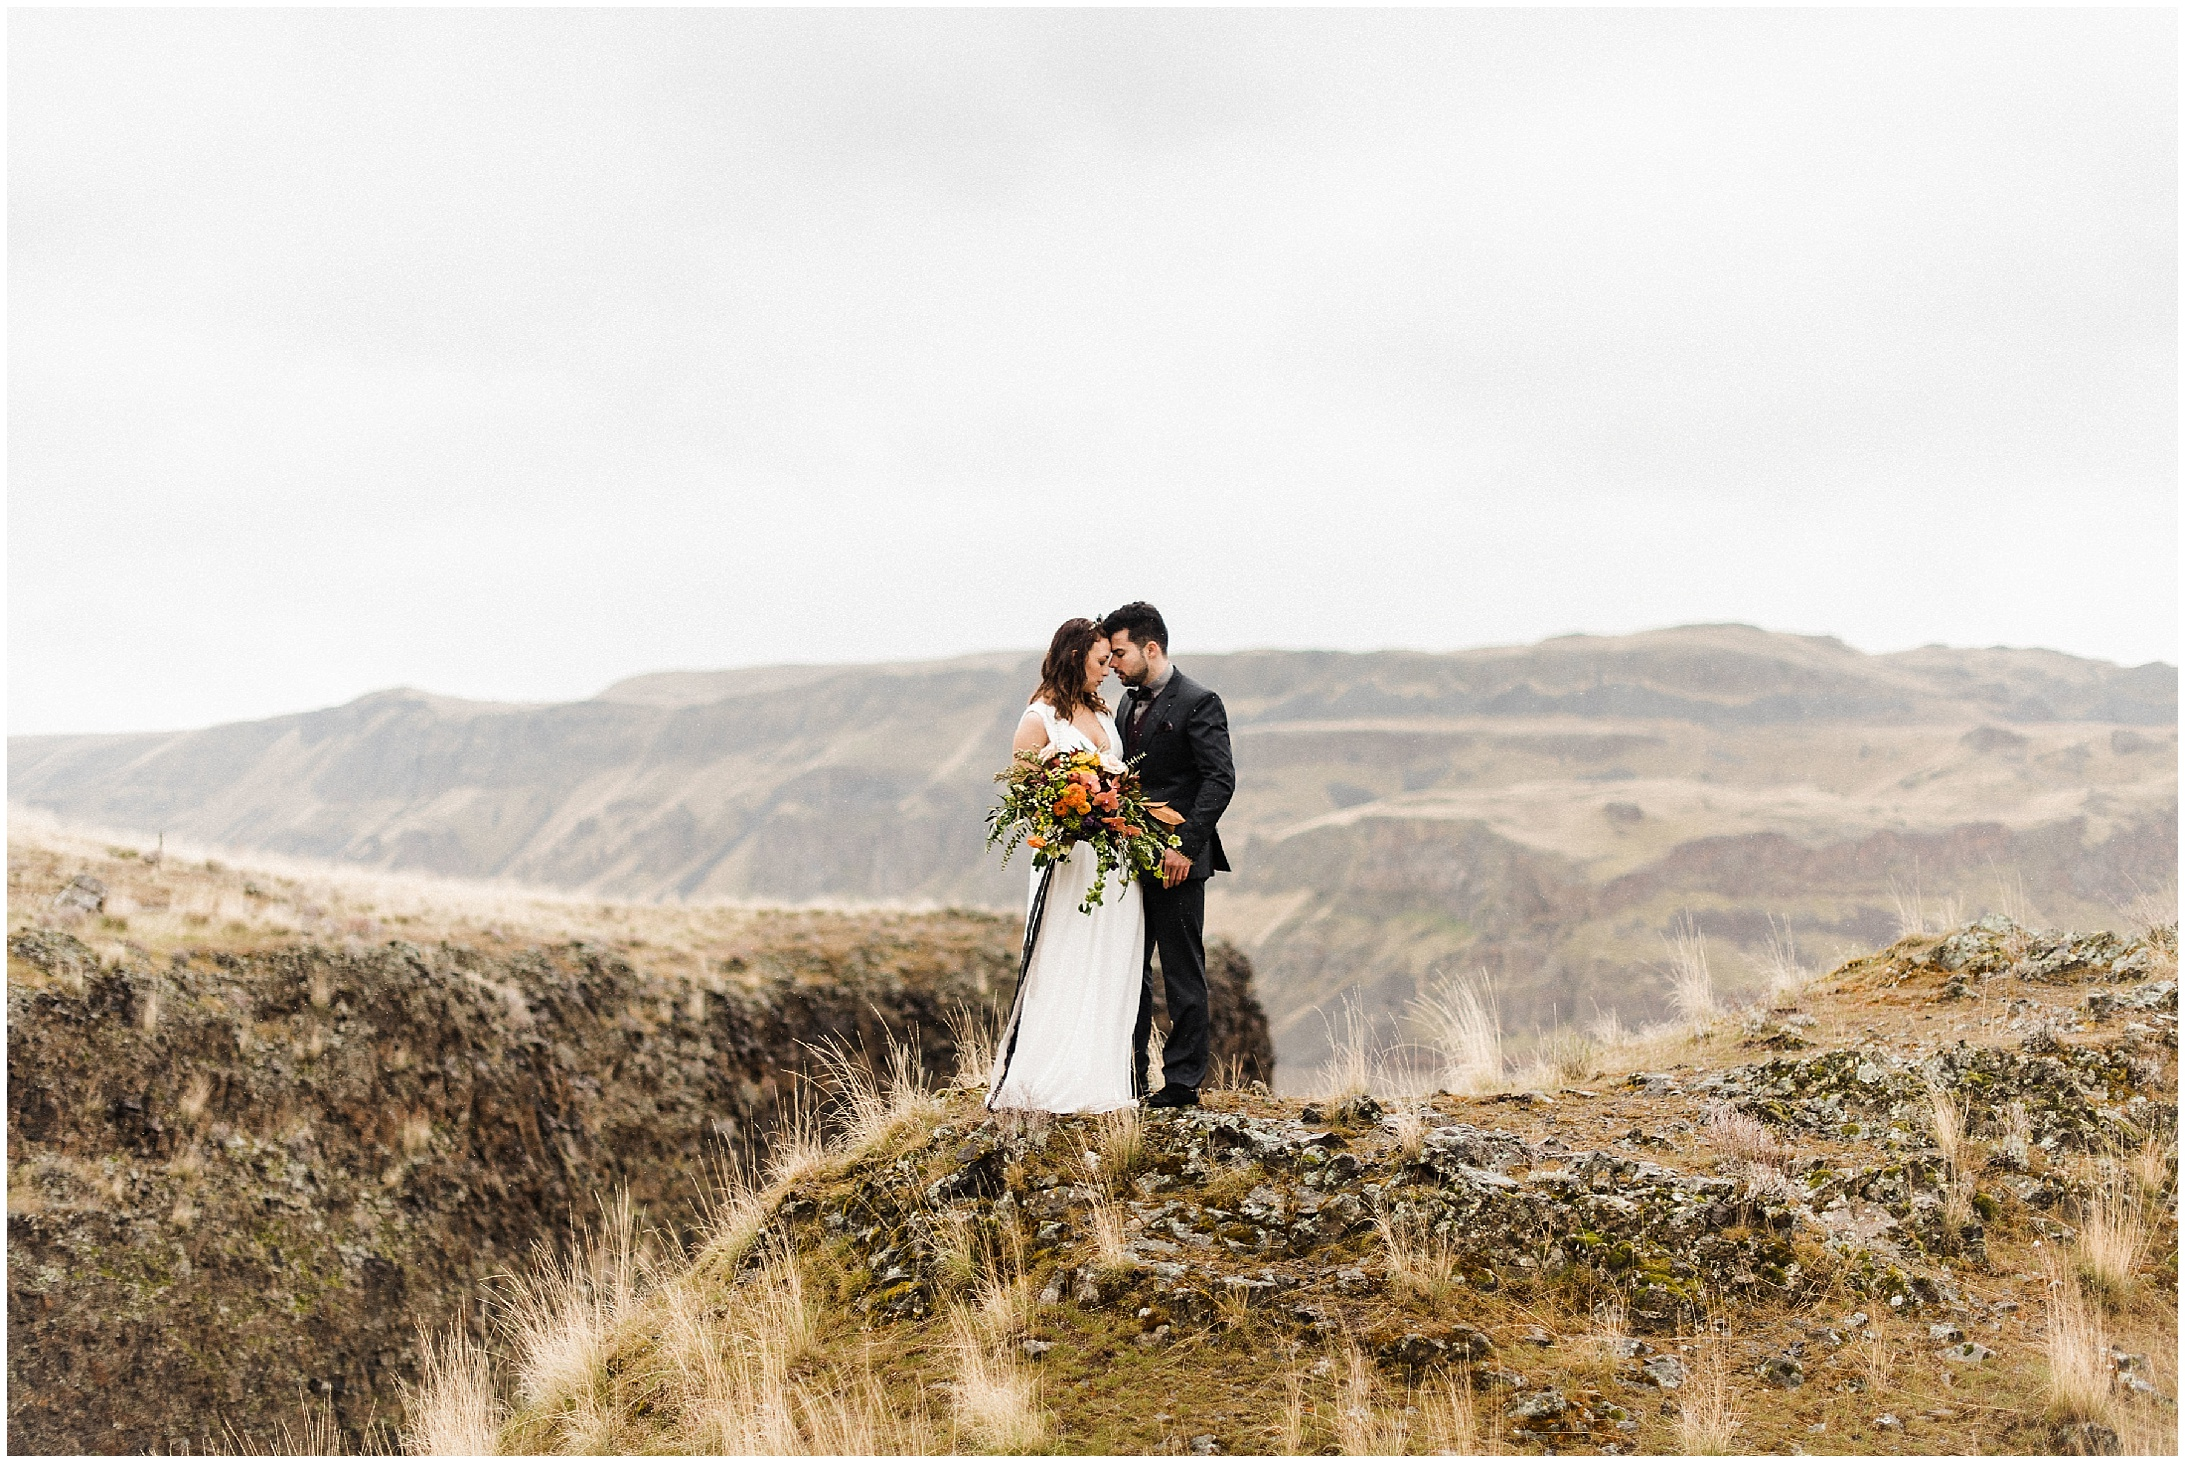 Photo of bride and groom standing on a cliff in a styled elopement at Lyon's Ferry State Park by Forthright Photo